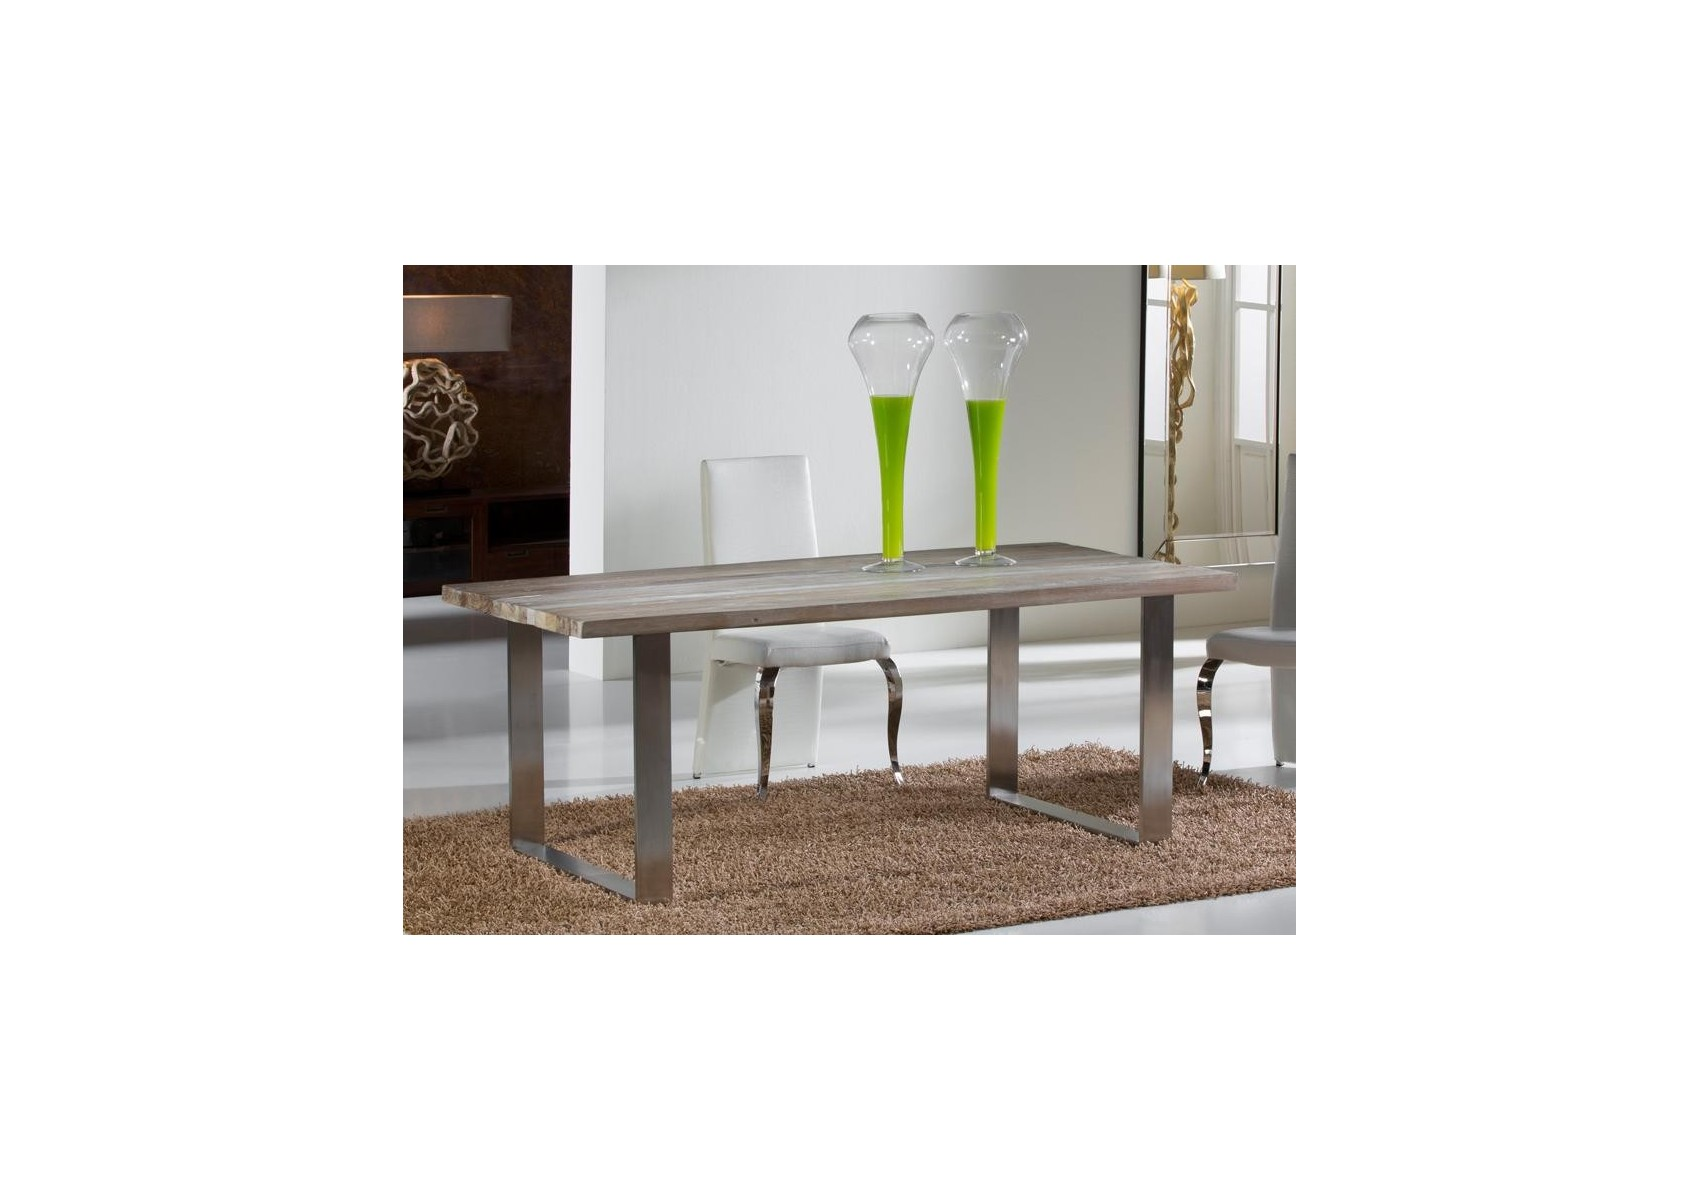 Model de table a manger en bois maison design for Table salle manger bois brut